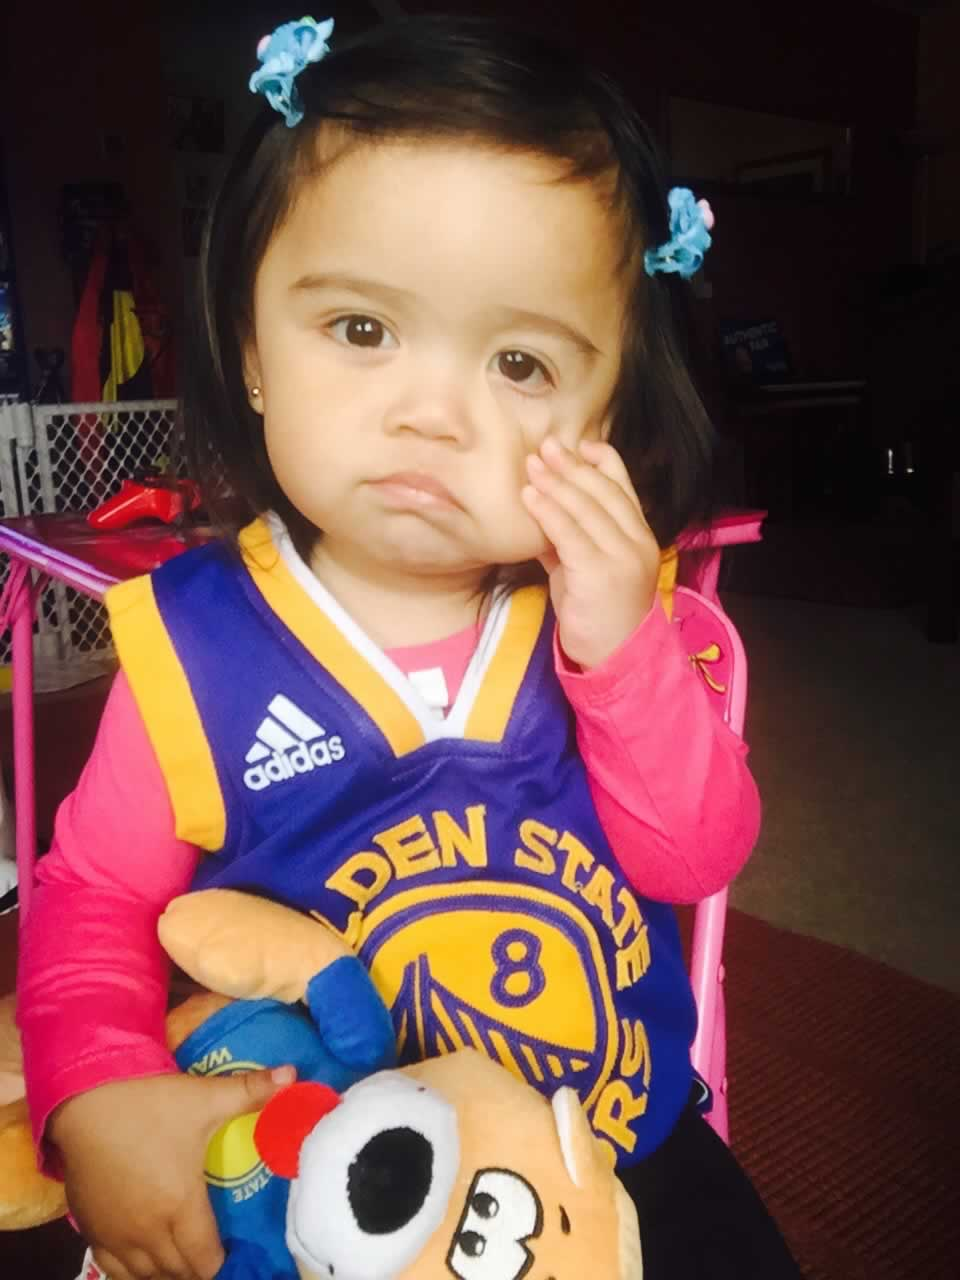 <div class='meta'><div class='origin-logo' data-origin='none'></div><span class='caption-text' data-credit='Photo submitted by Ritchielei via uReport'>Warriors fan Liela shows off her game face! Tag your photos on Facebook, Twitter, Google Plus, or Instagram using #DubsOn7!</span></div>